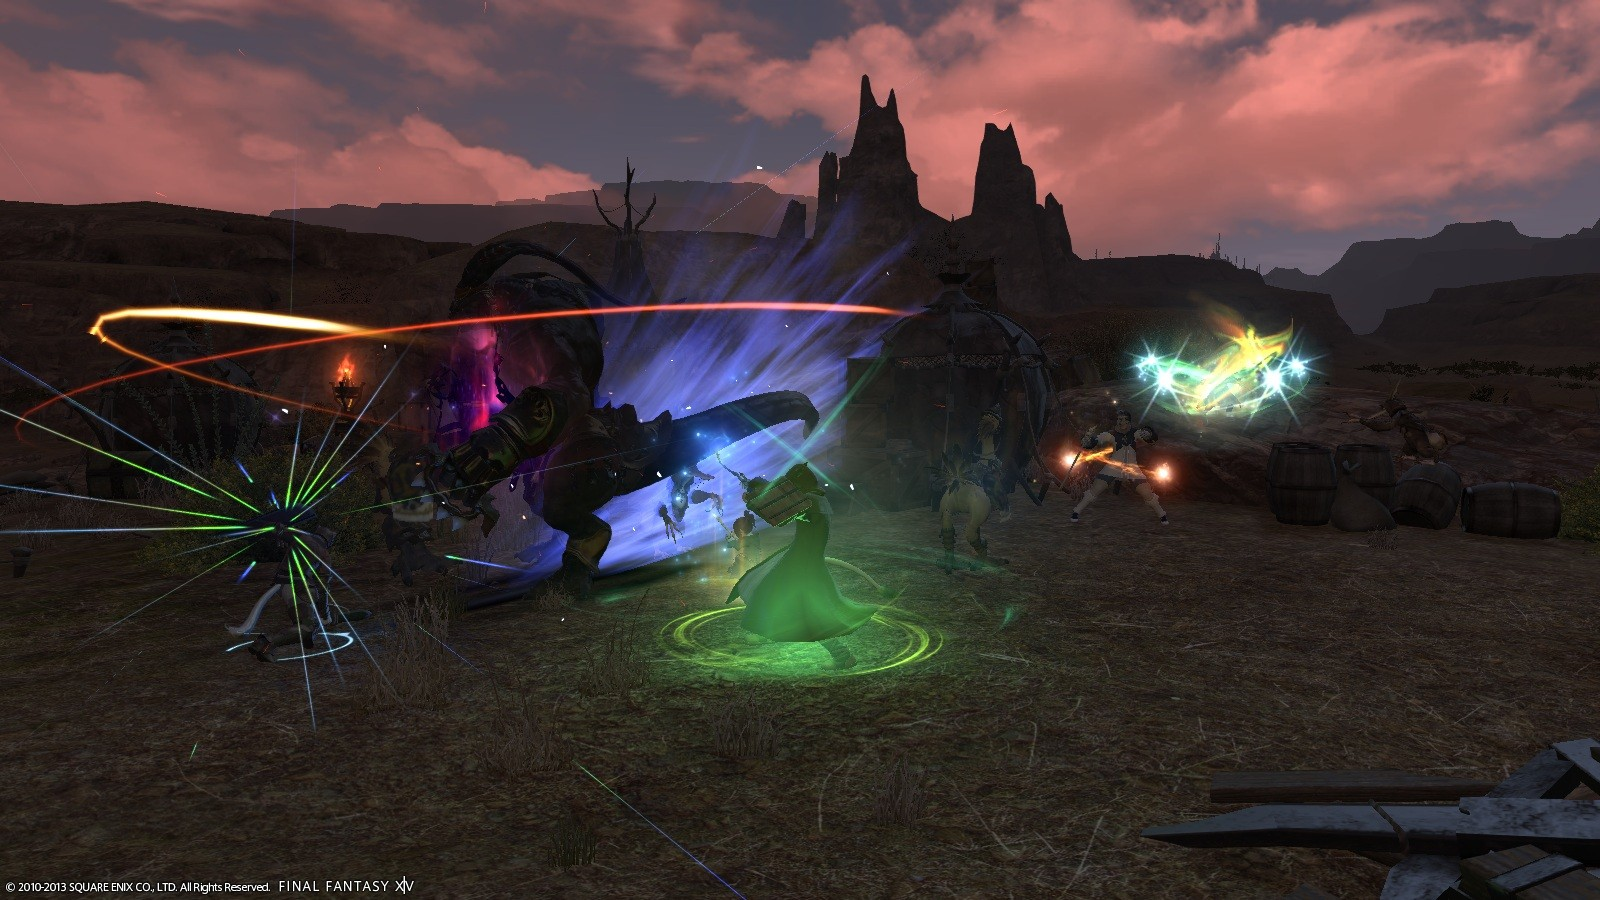 Final Fantasy XIV: A Realm Reborn - Yup.. typical FF battle. Particle effects everywhere =P